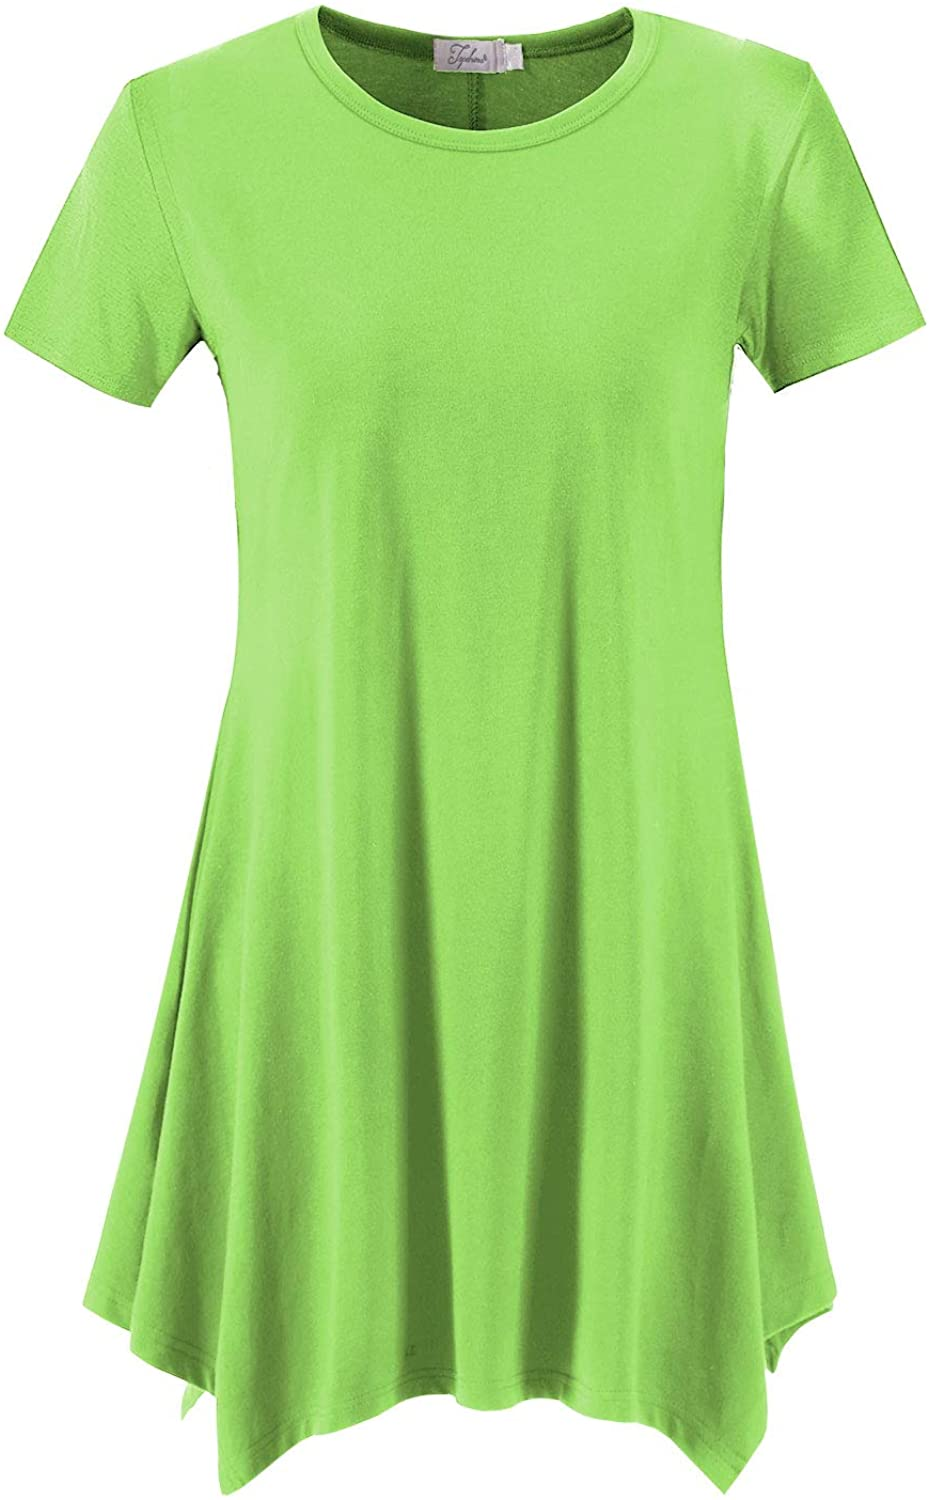 Topdress Women's Loose Fit Swing Shirt Recommended Top Legg Casual Tunic famous for